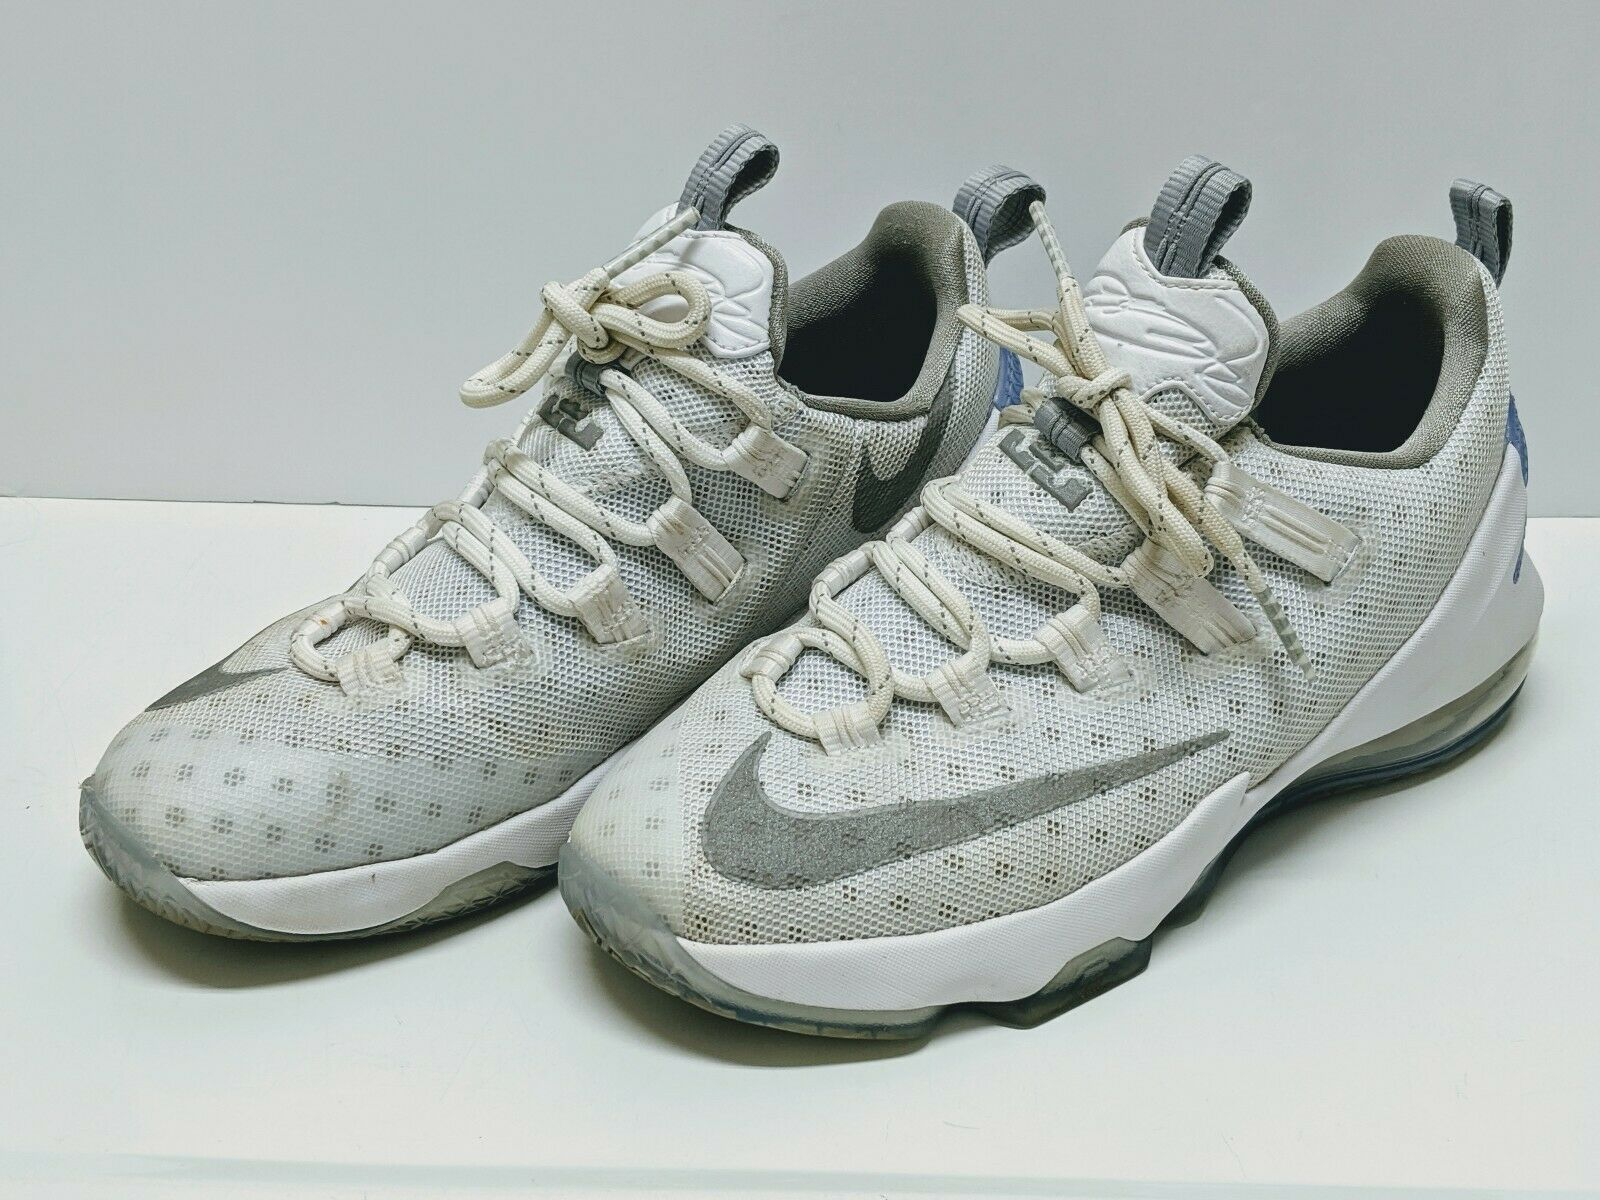 Nike Lebron James Xiii Low Gs 13 Size 5 Youth Basketball 834347 100 White Gray For Sale Online